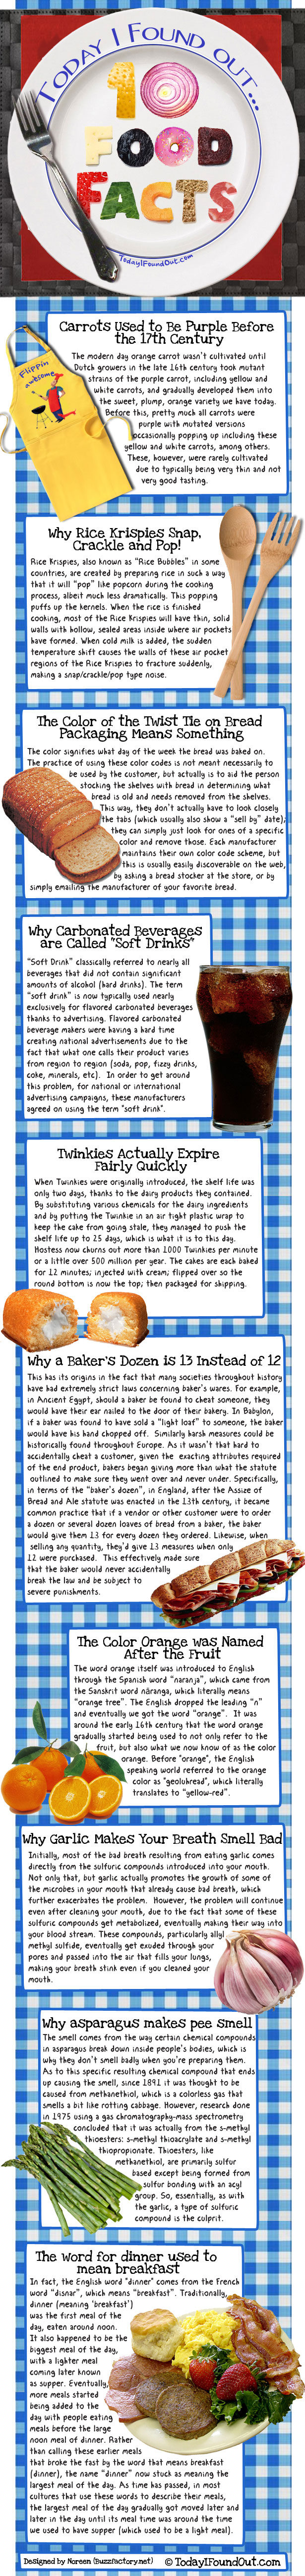 Food Facts2 Food FUN FACTS